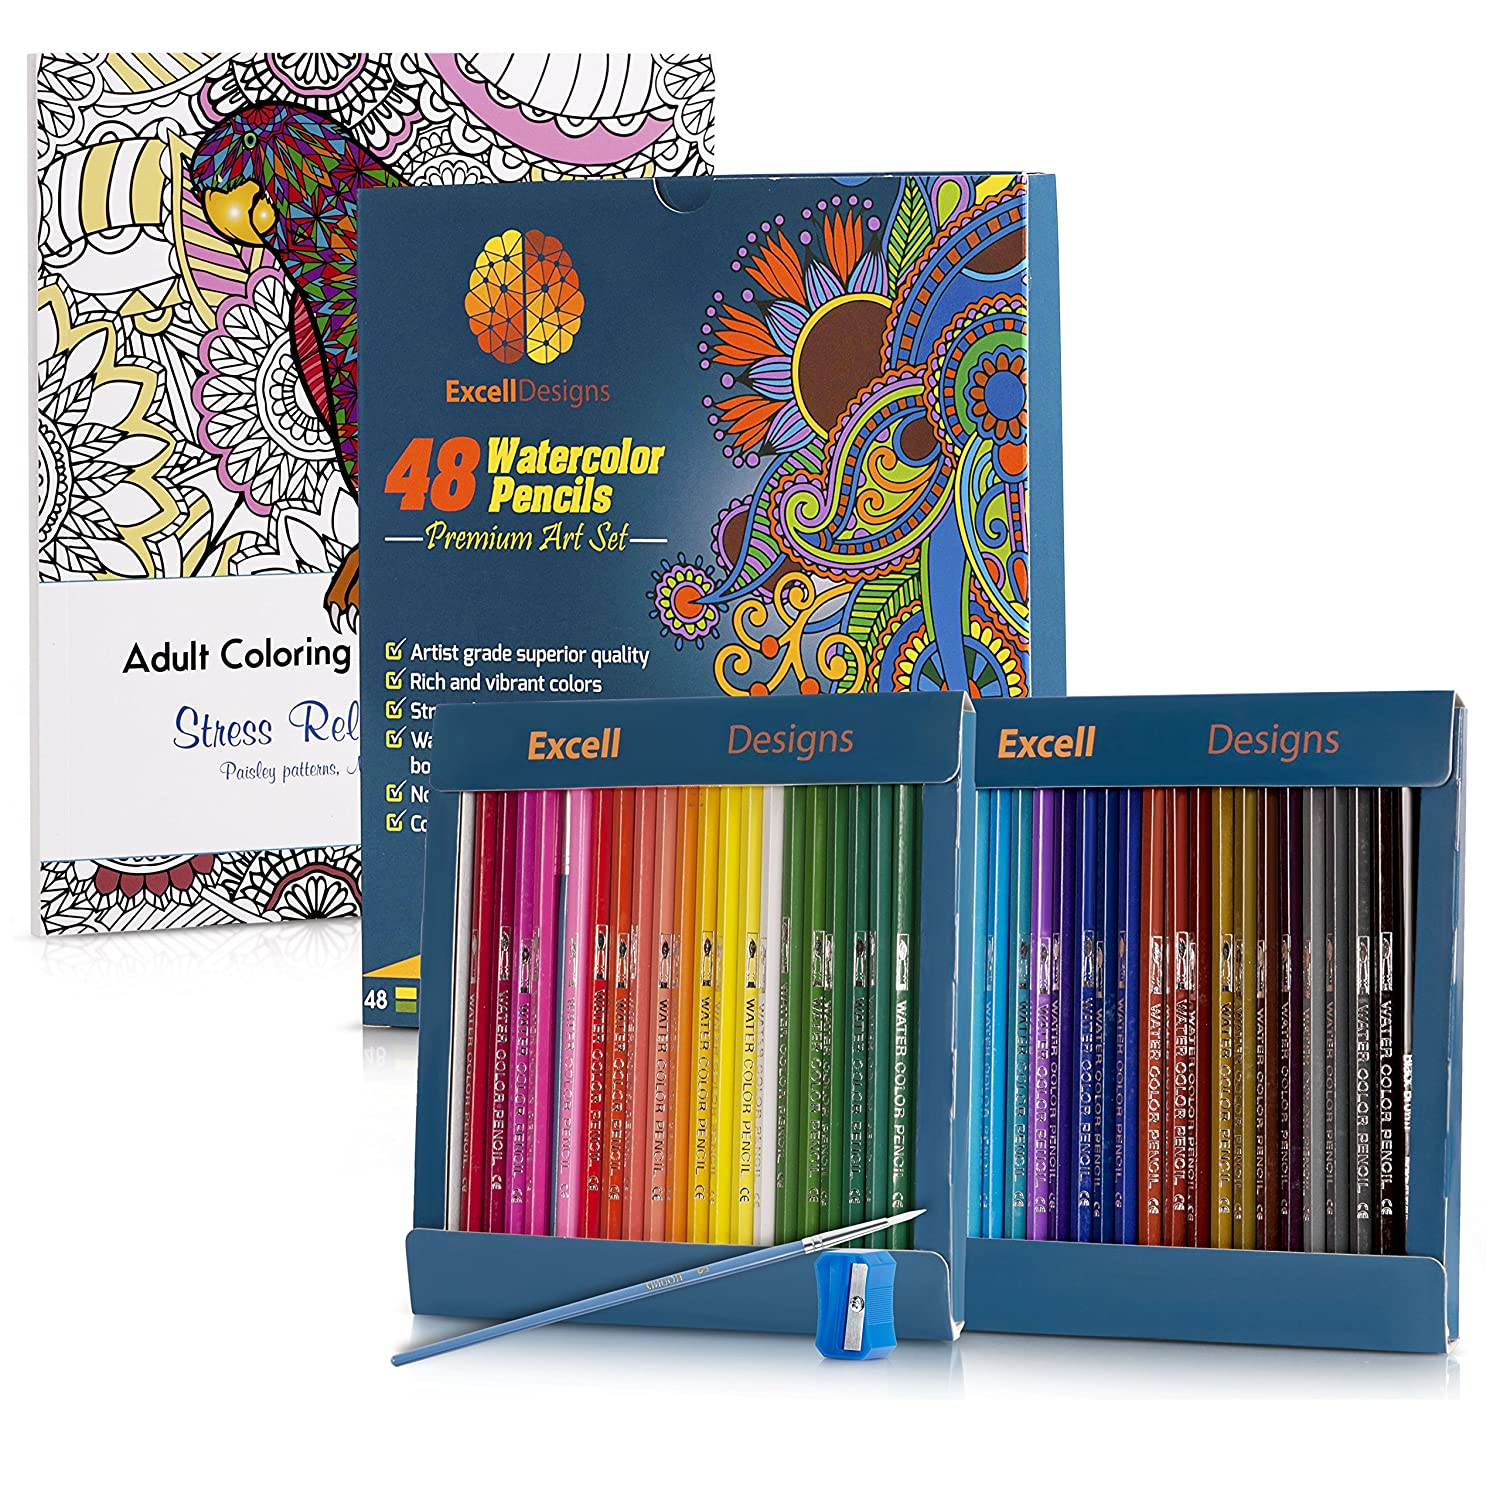 Amazon.com: 48 Watercolor Pencils with Adult Coloring Book ...